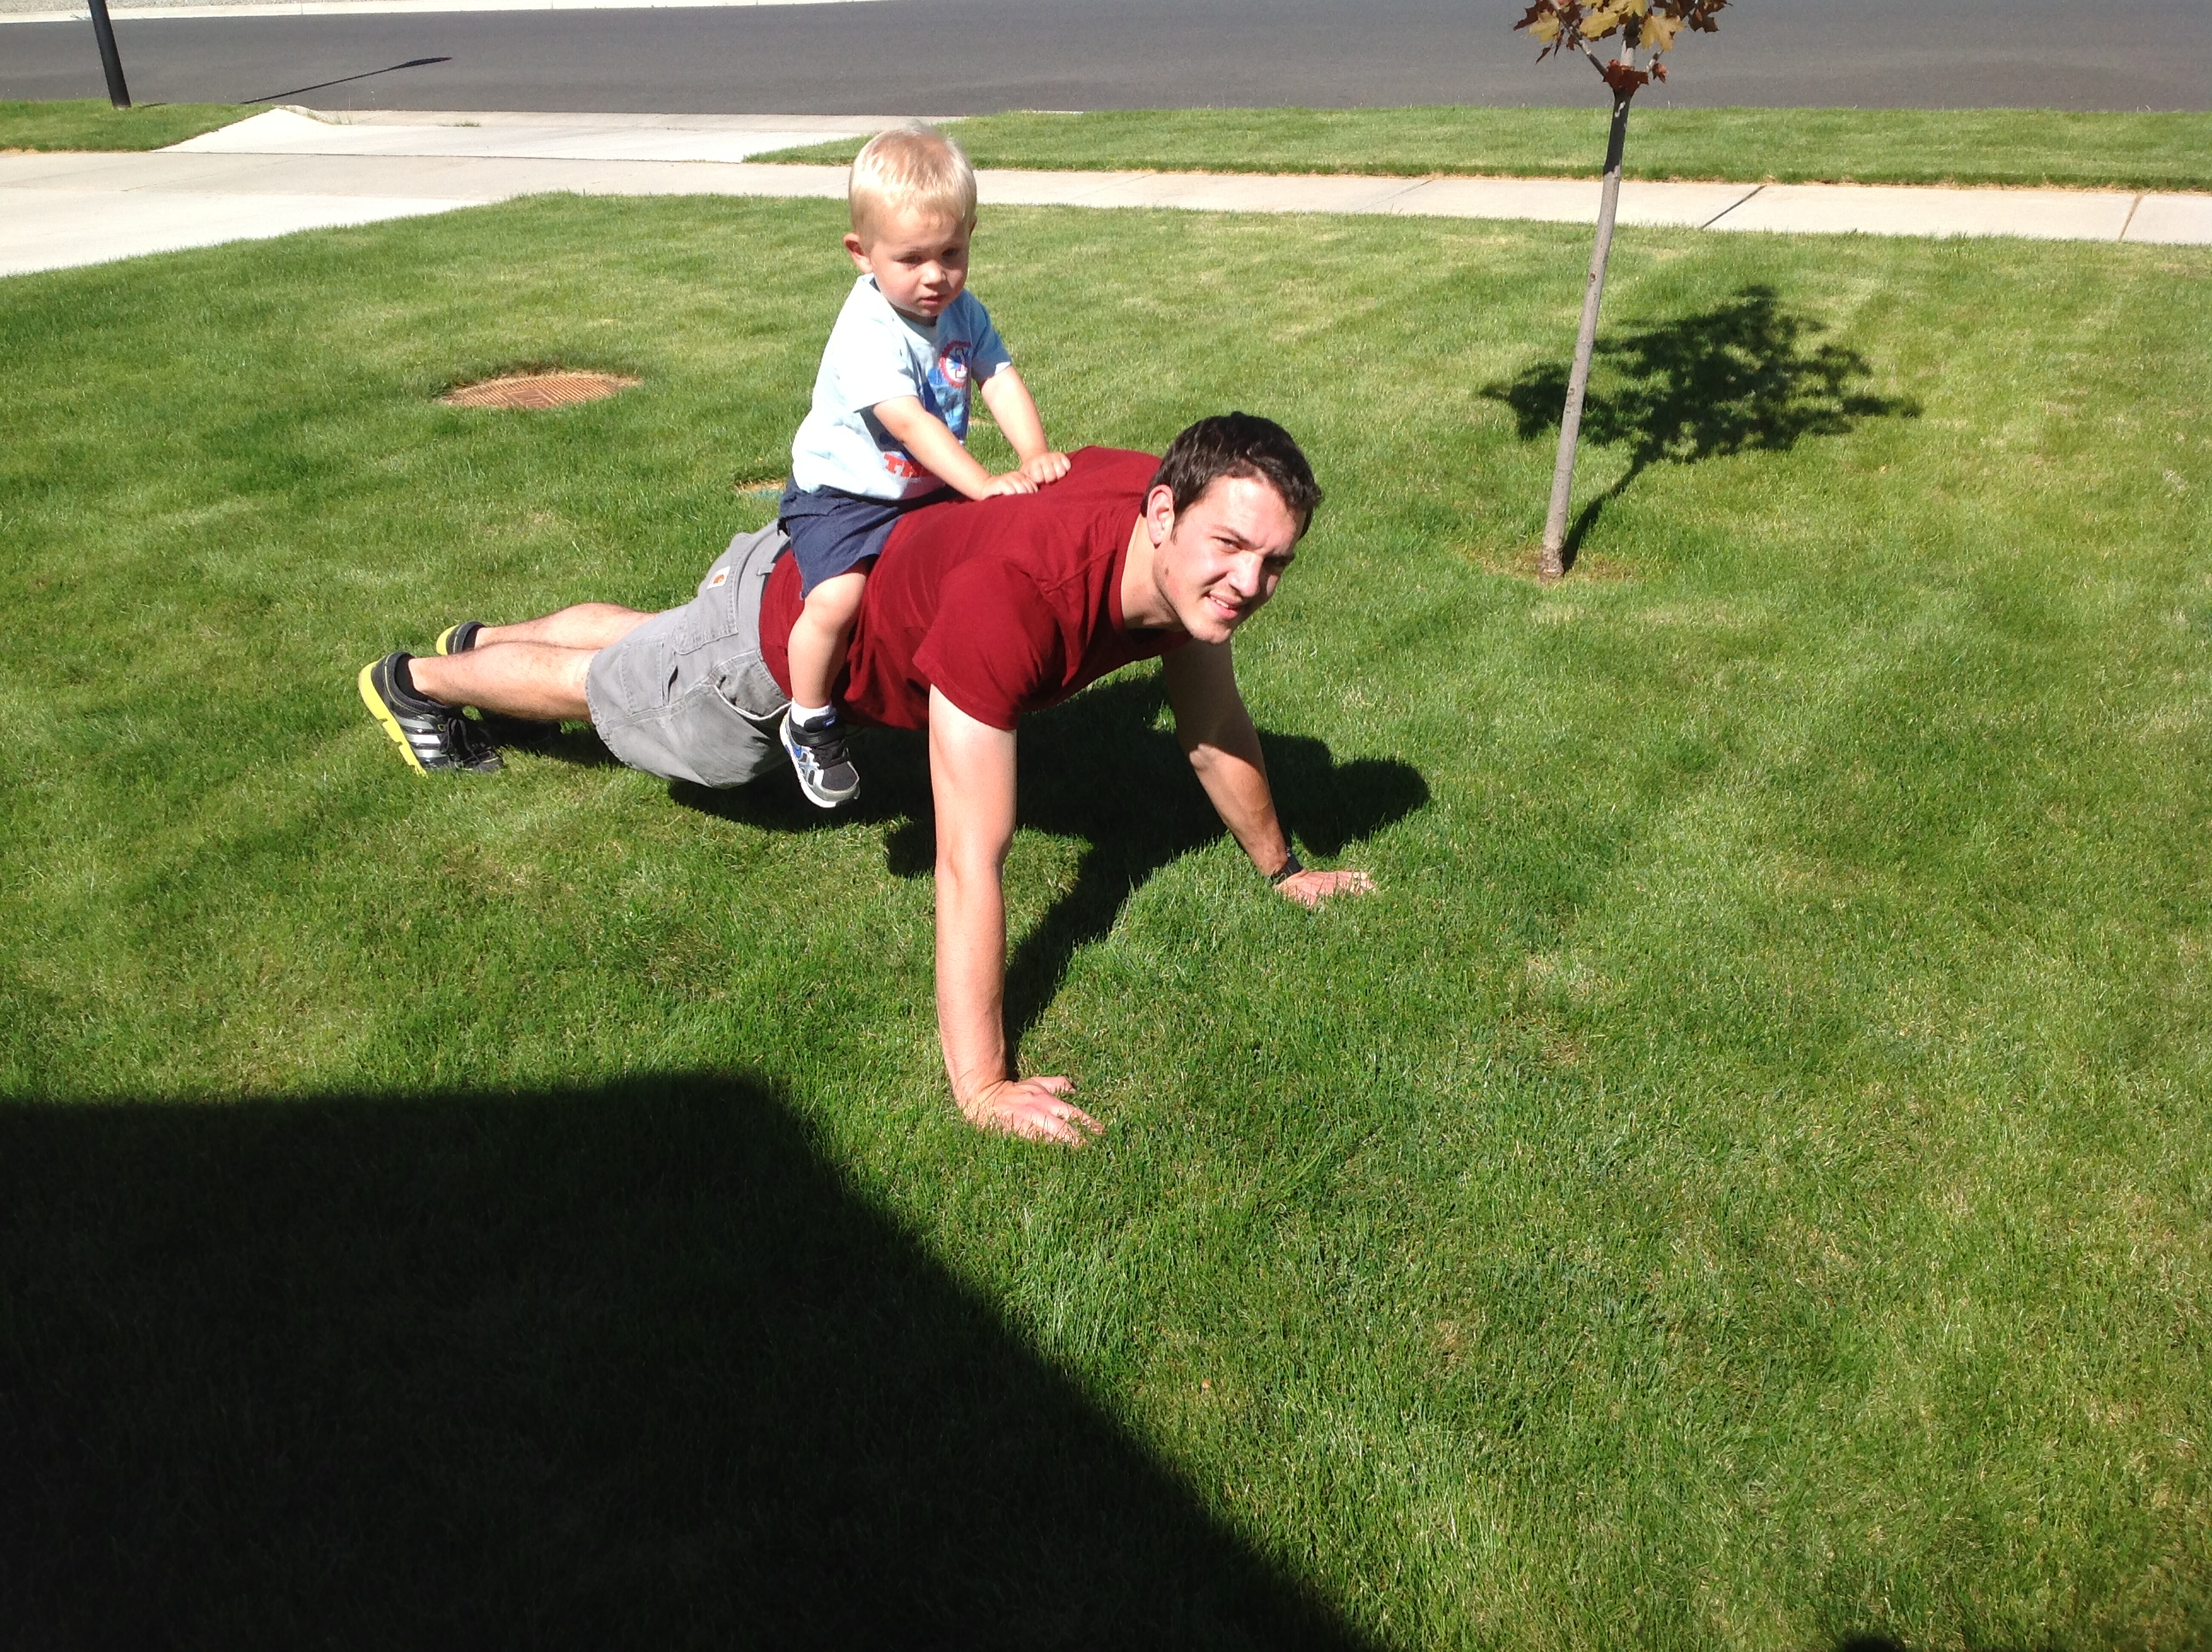 Family Fitness - The Best Upper Body Exercise For Dad